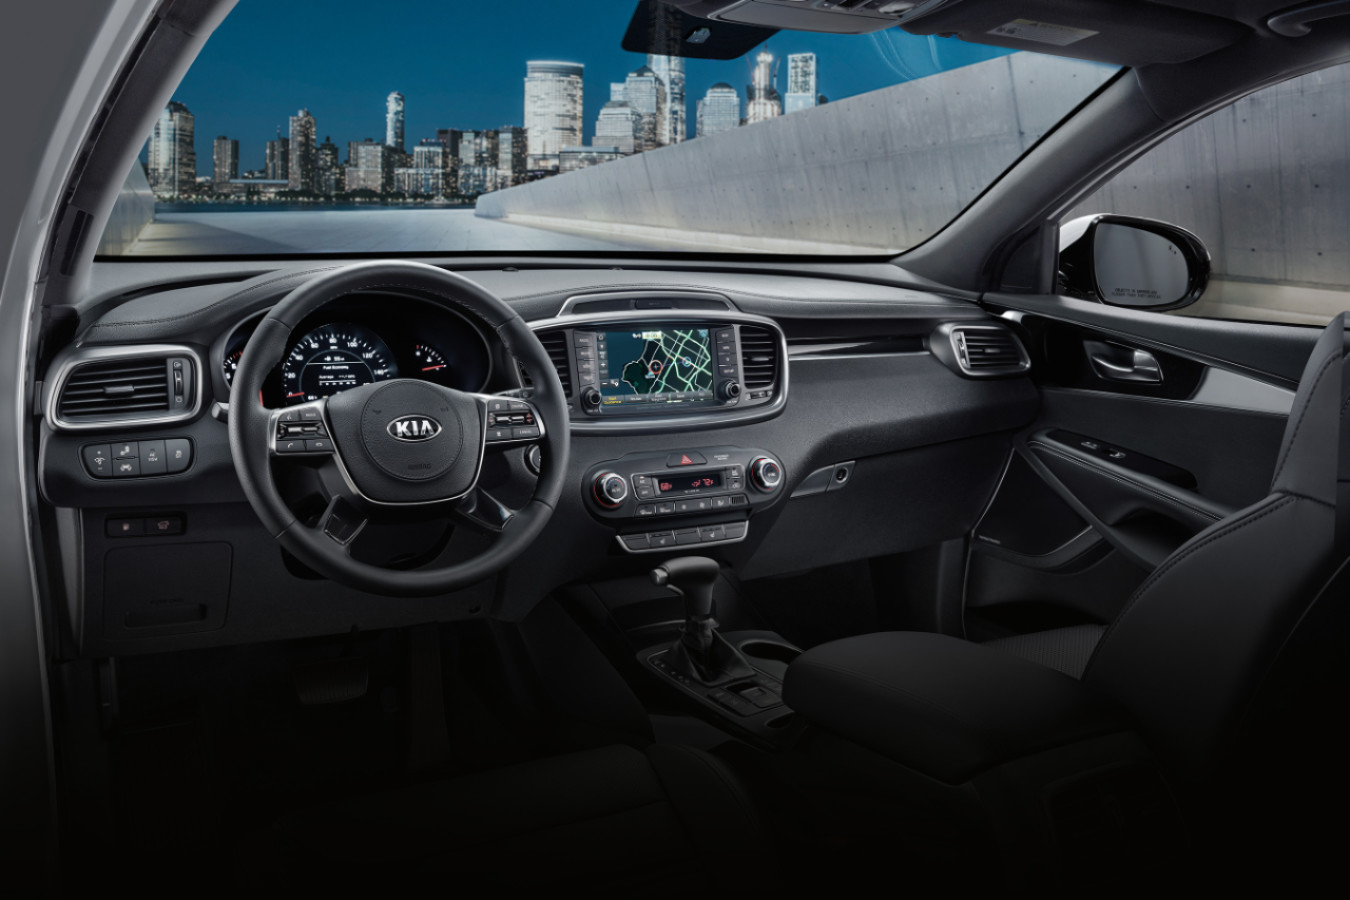 Inside the 2020 Kia Sorento